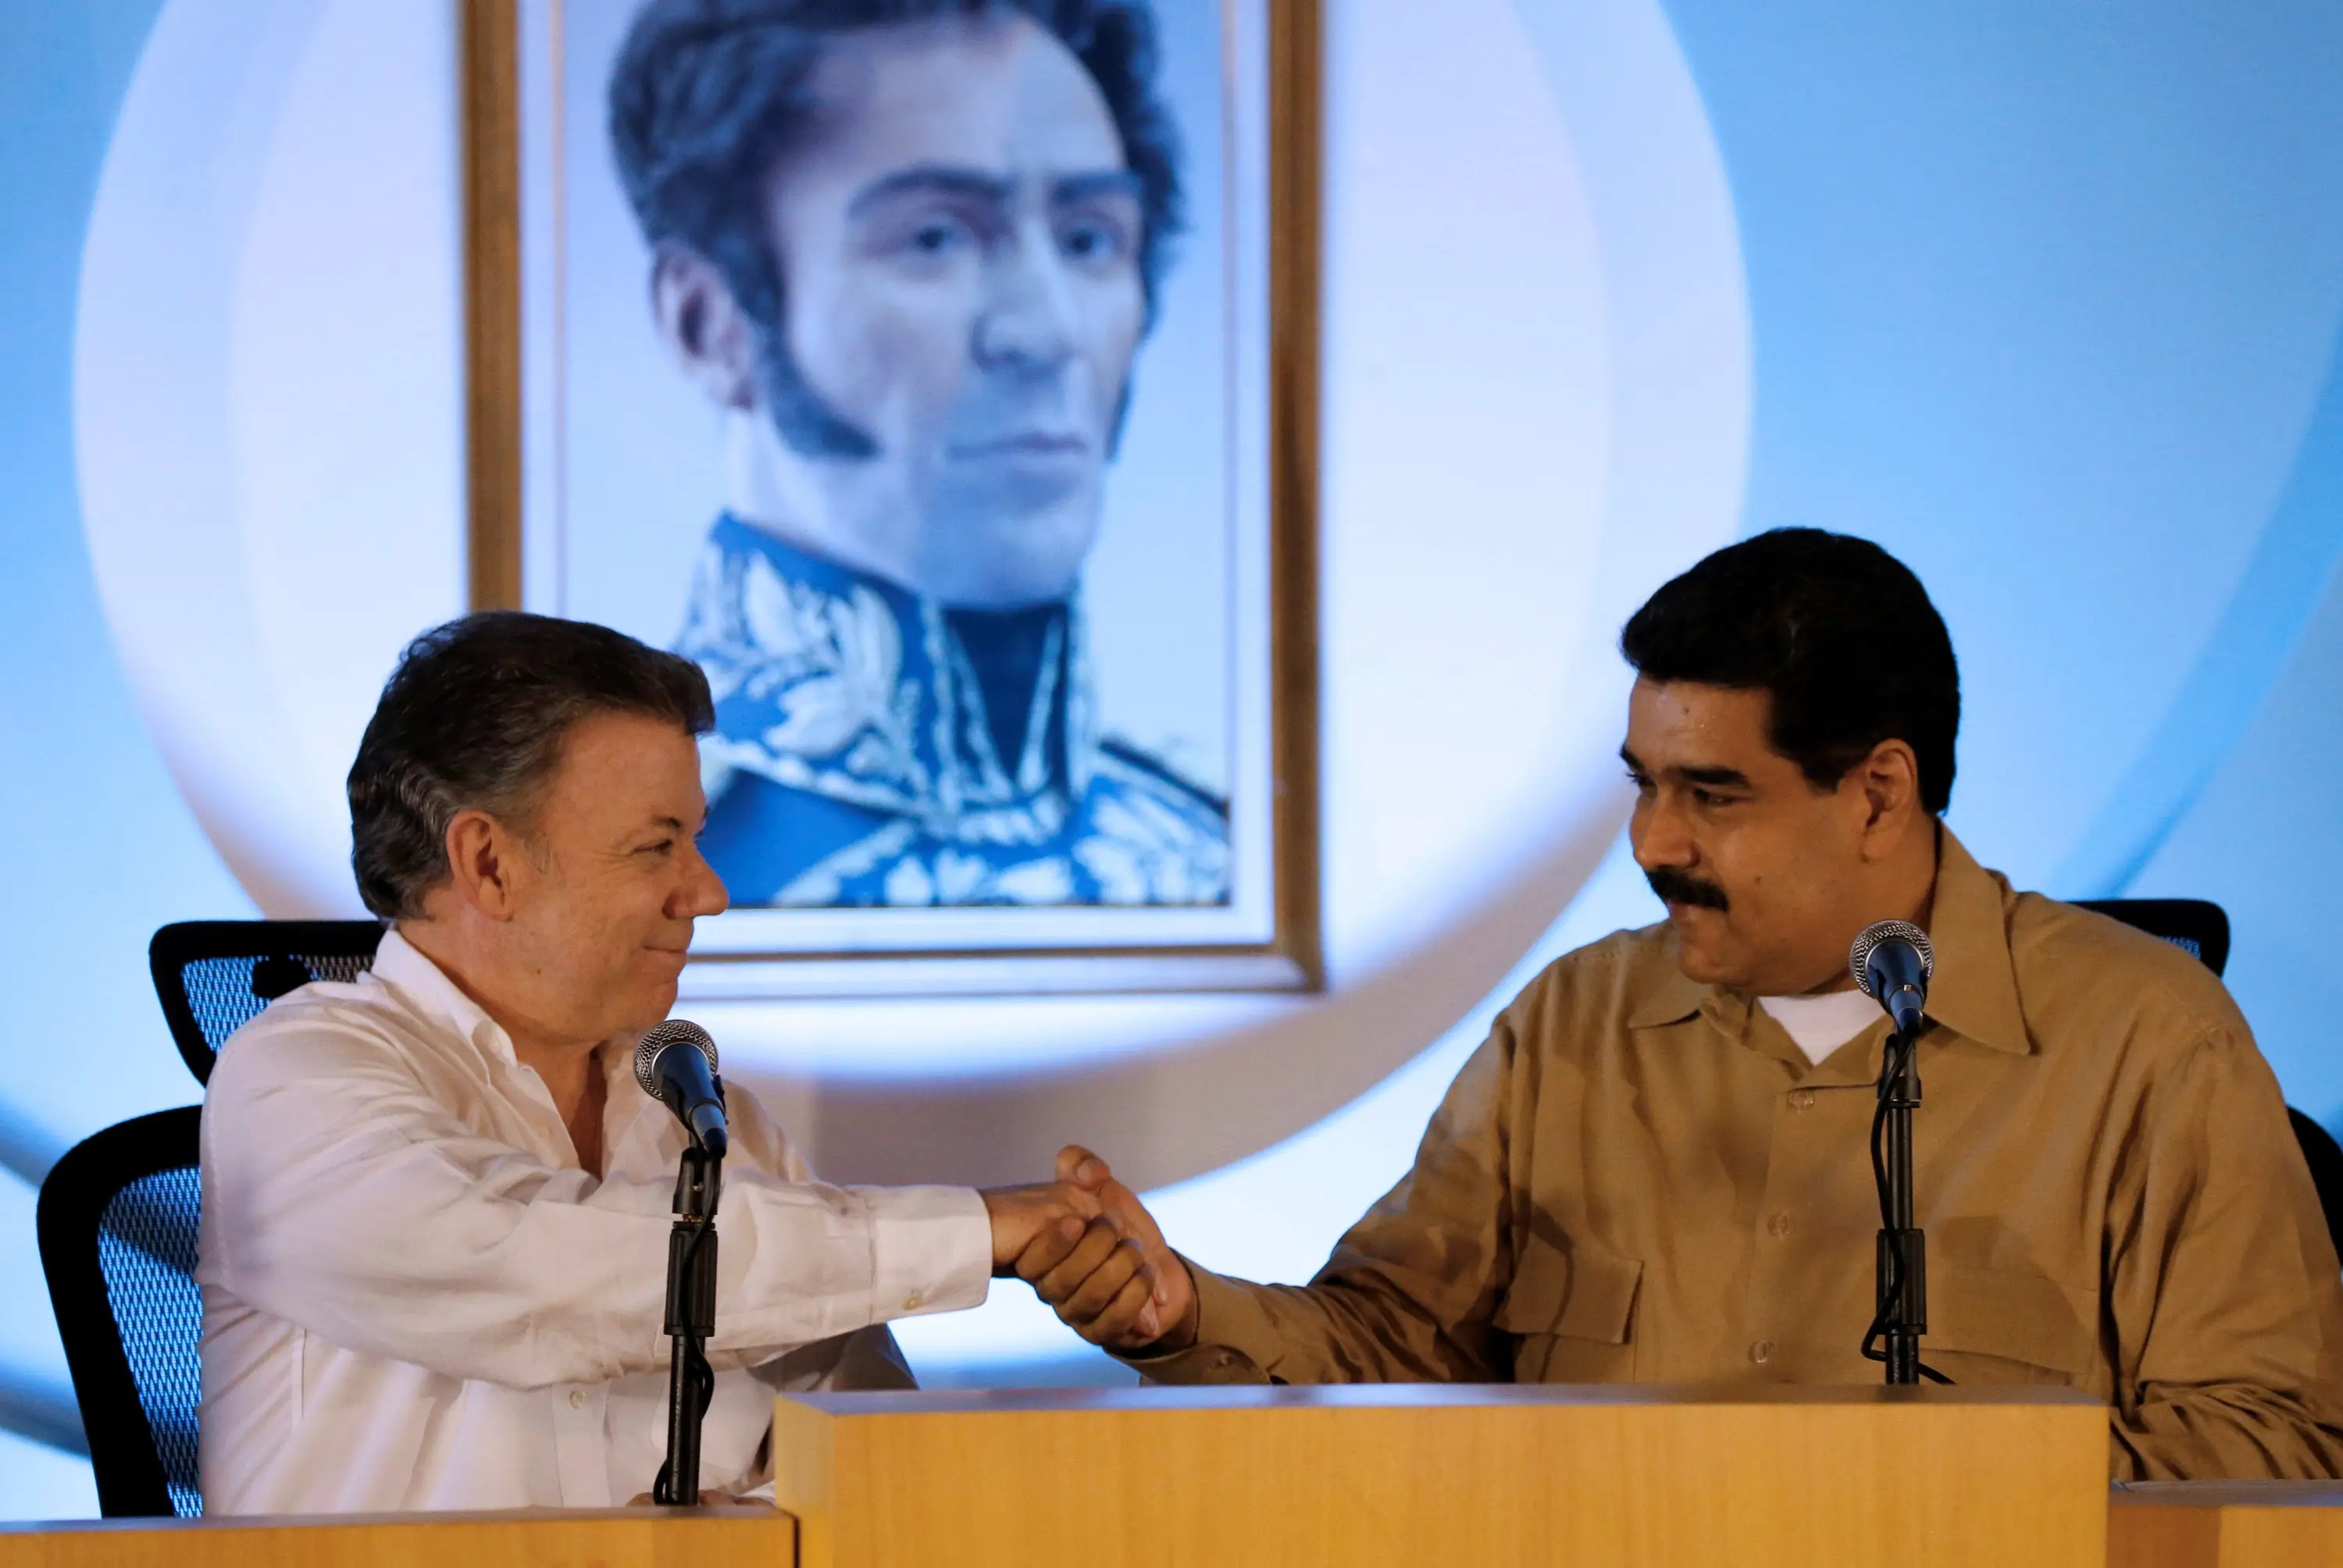 Presidents of Venezuela and Colombia